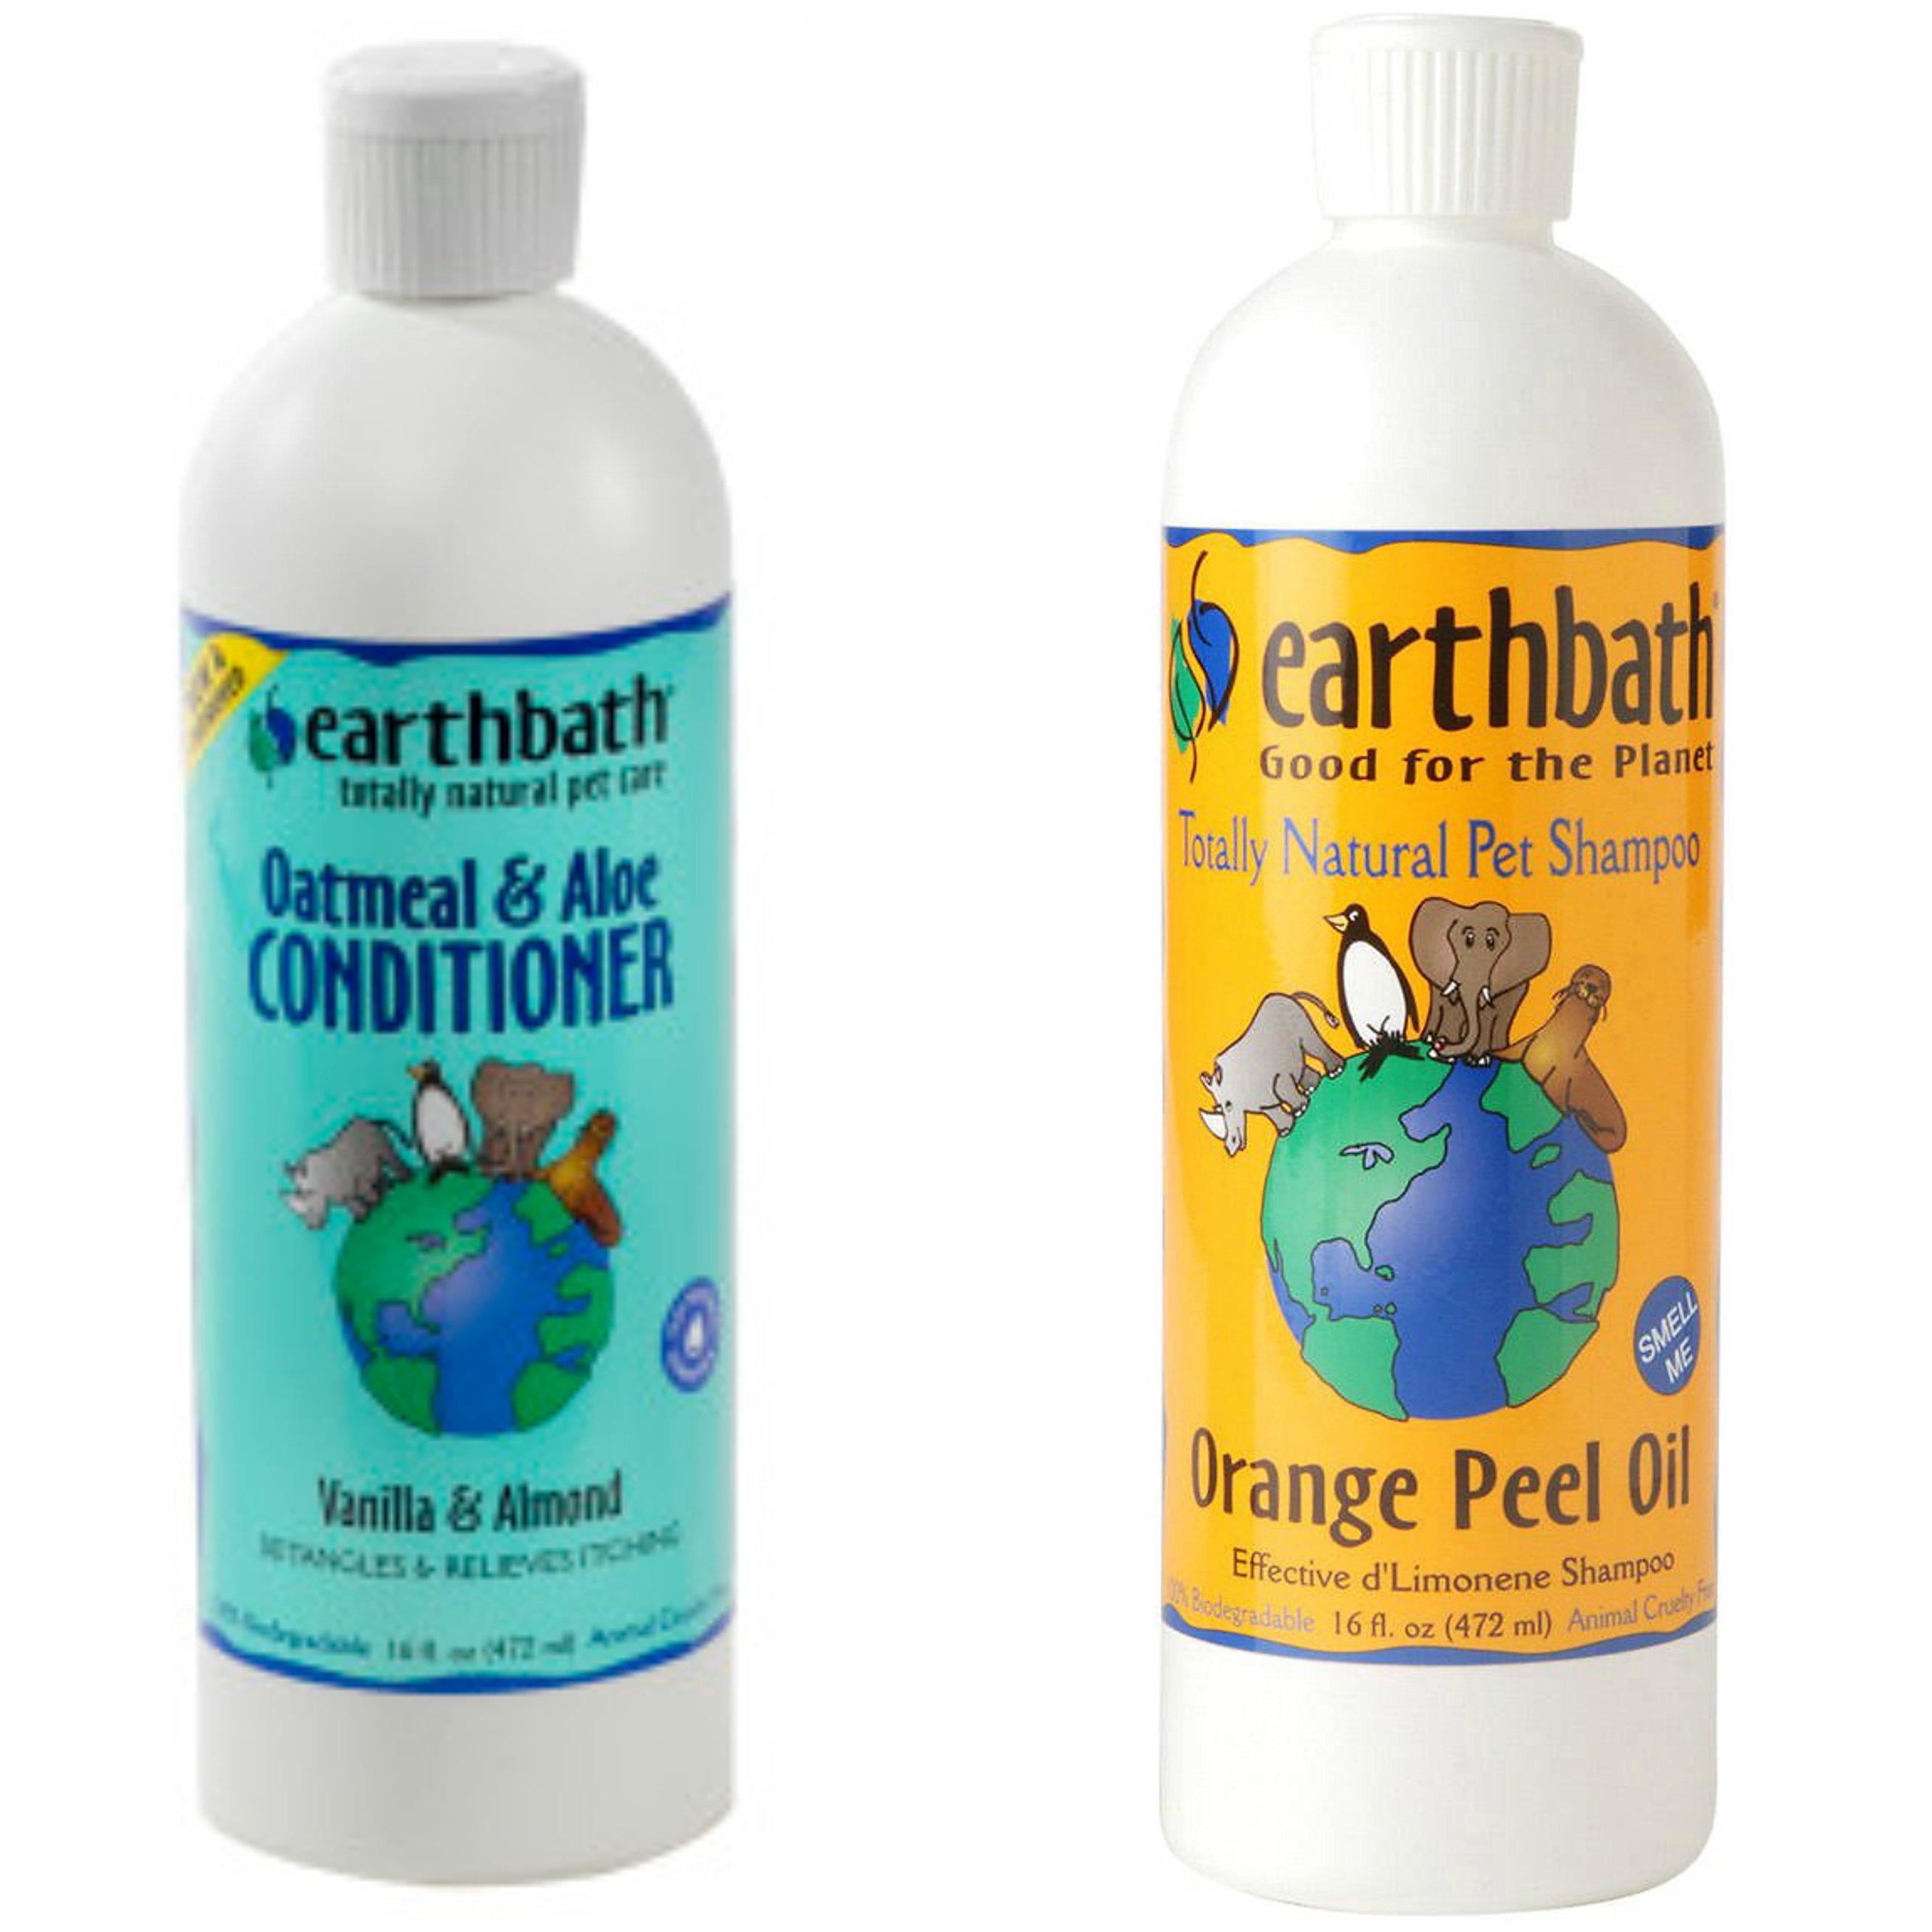 Earthbath Orange Peel Oil Shampoo for Dogs, 16 Ounces Oatmeal and Aloe Conditioner for Dogs, Vanilla and Almond Scent, 16 Ounces by Earthbath